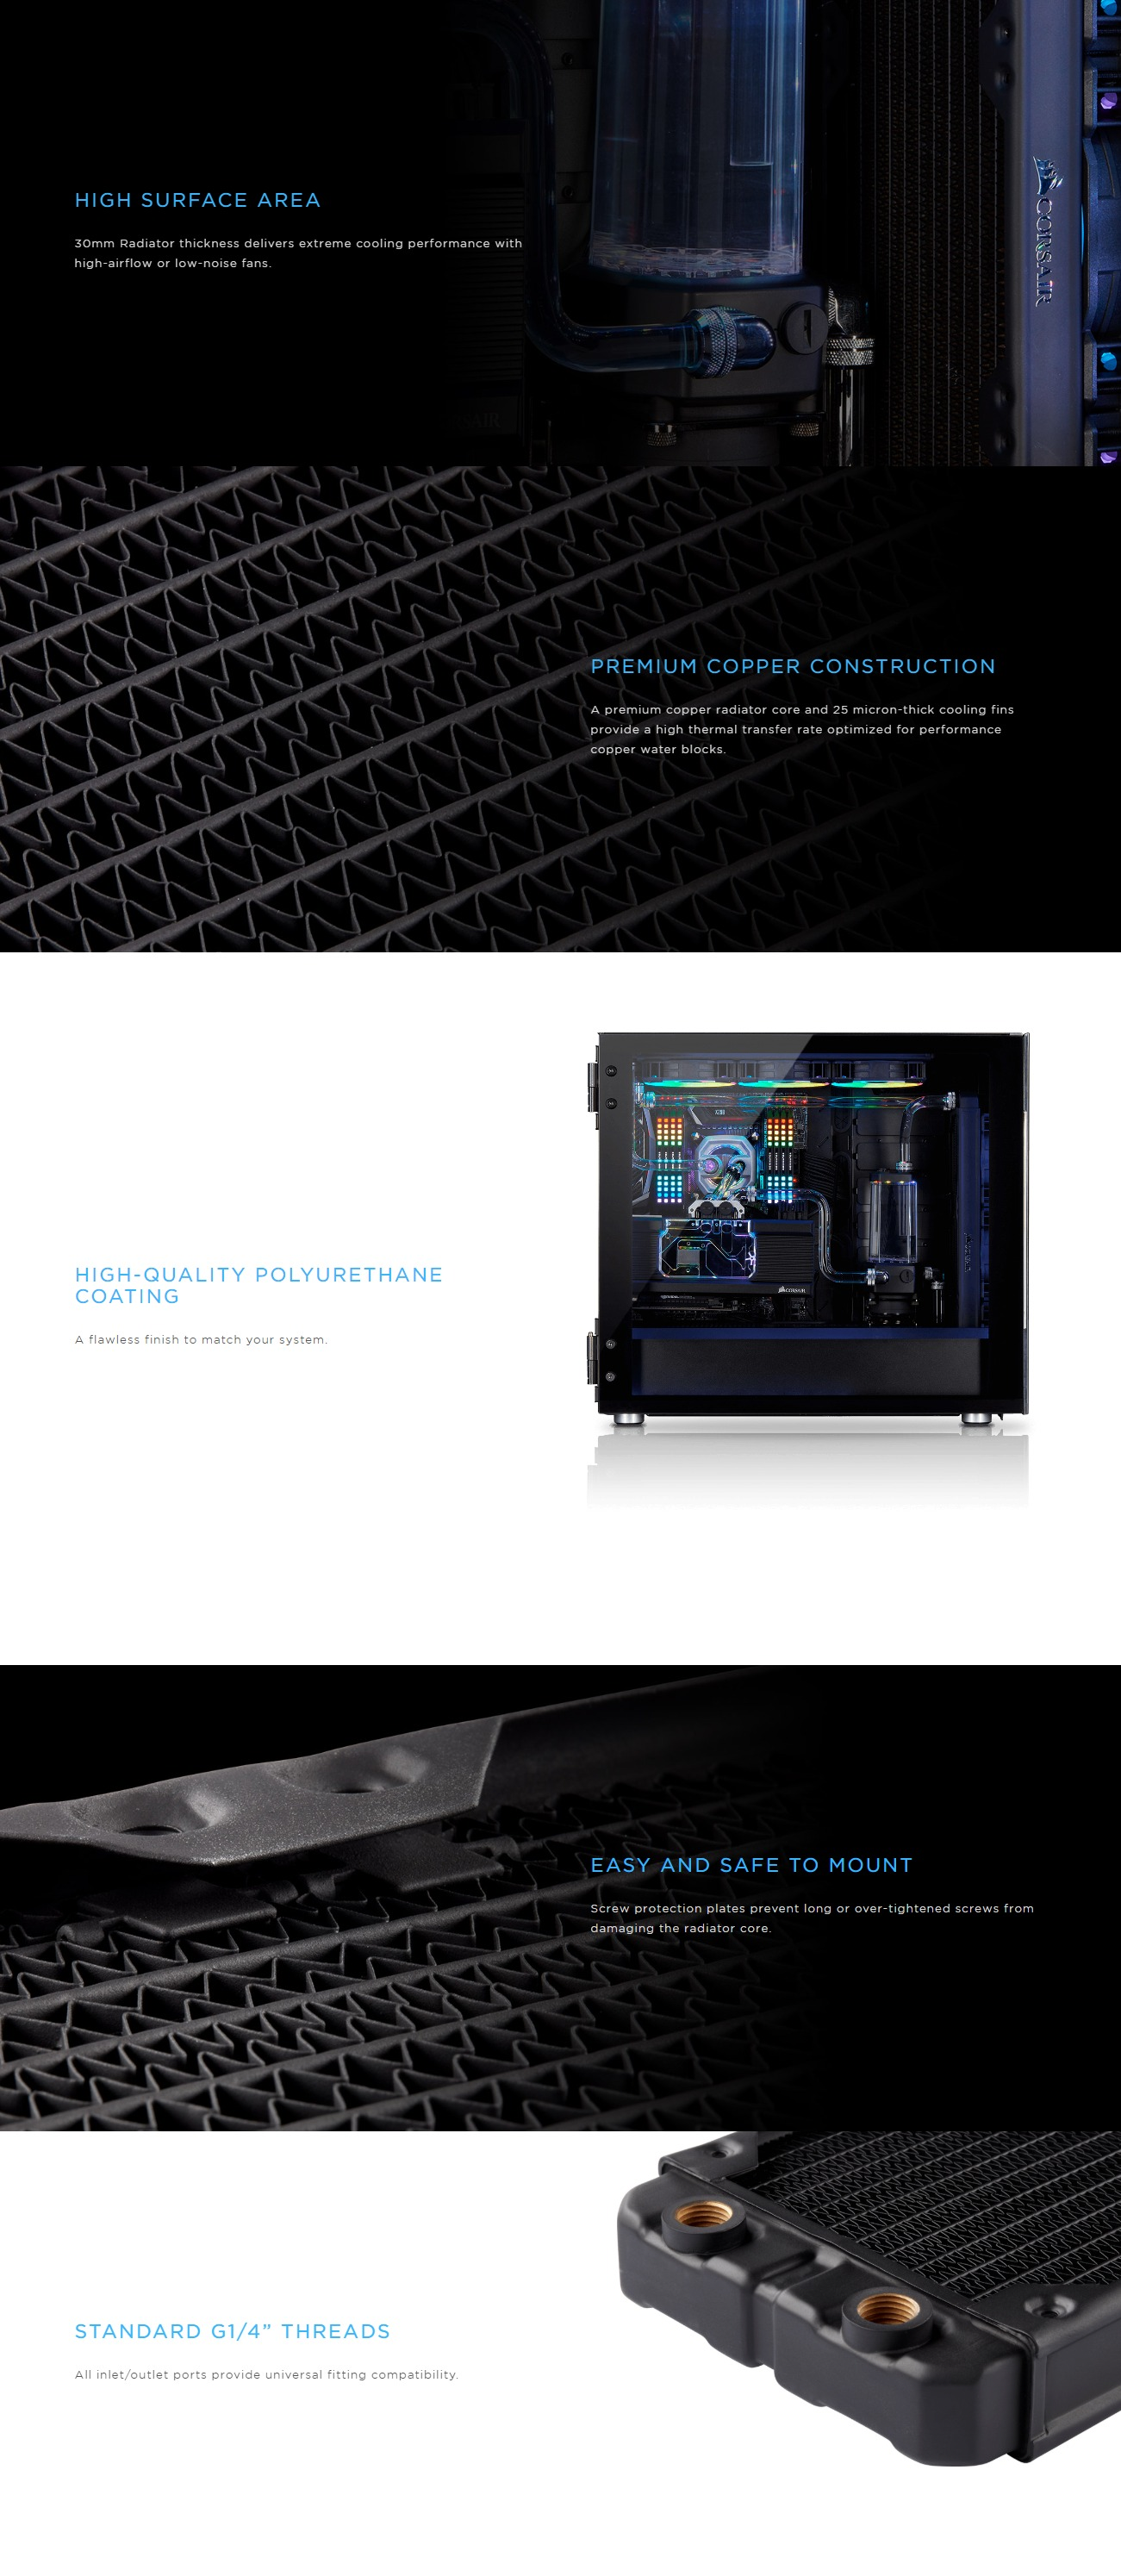 A large marketing image providing additional information about the product Corsair Hydro X Series XR5 120mm Radiator - Additional alt info not provided